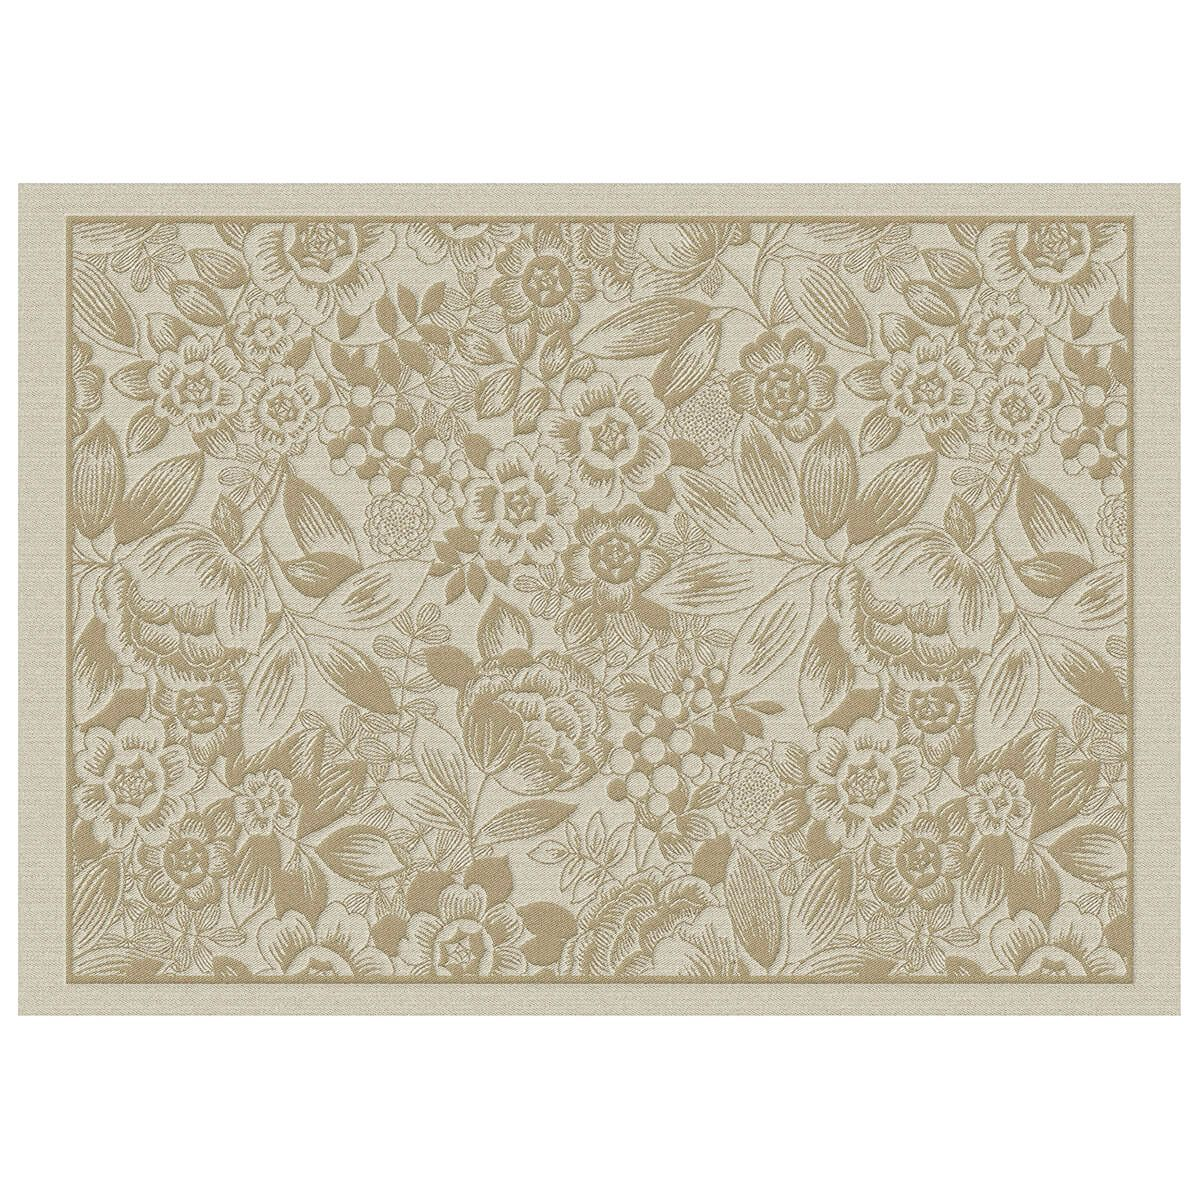 Osmose Cork Florale Coated Placemats